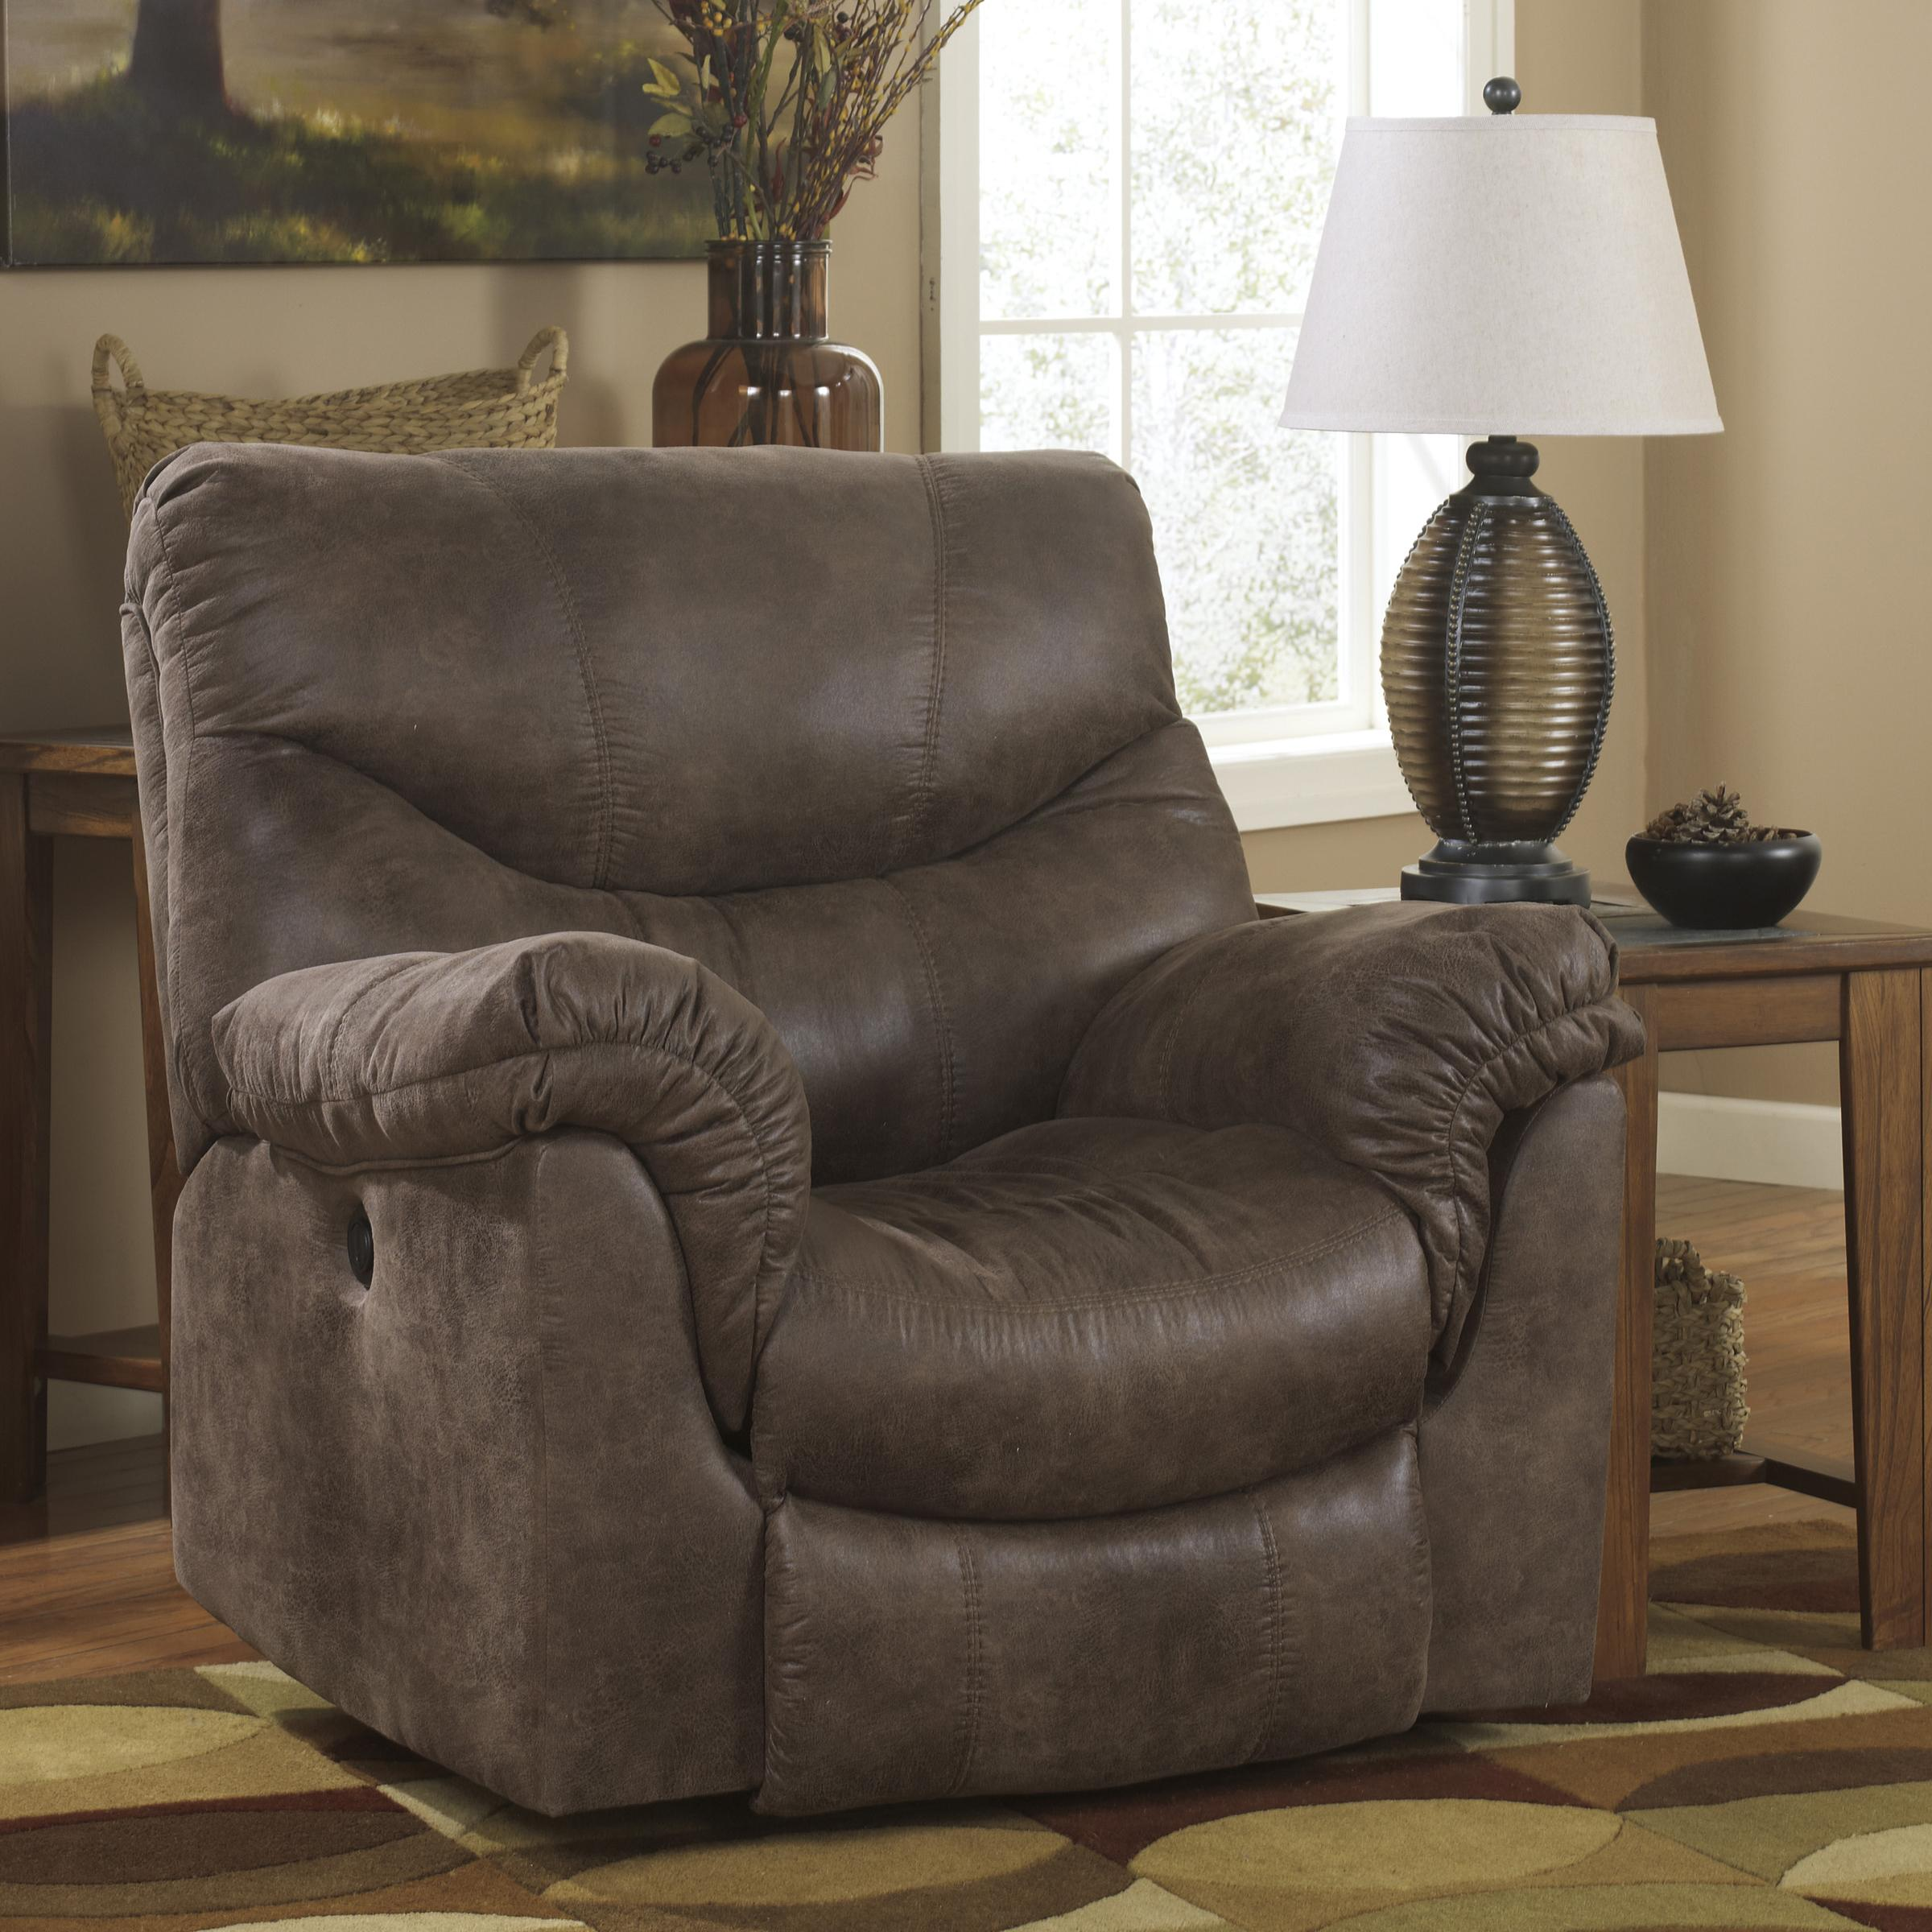 Signature Design by Ashley Alzena - Gunsmoke Rocker Recliner - Item Number: 7140025